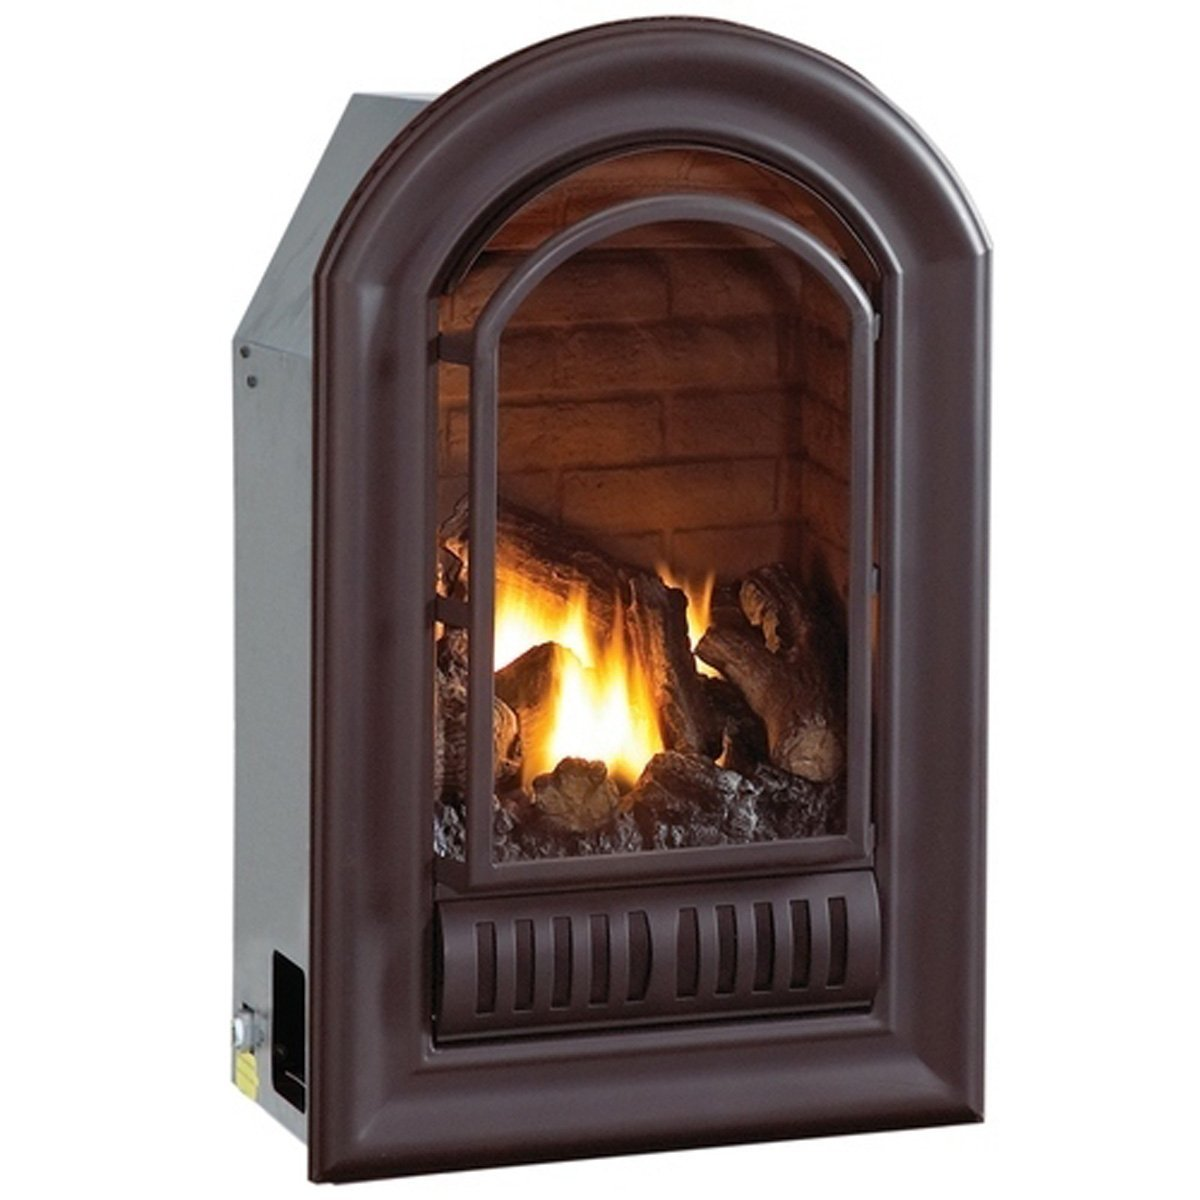 Btu Gas Fireplace Cheap Ventless Natural Gas Fireplace Insert Find Ventless Natural